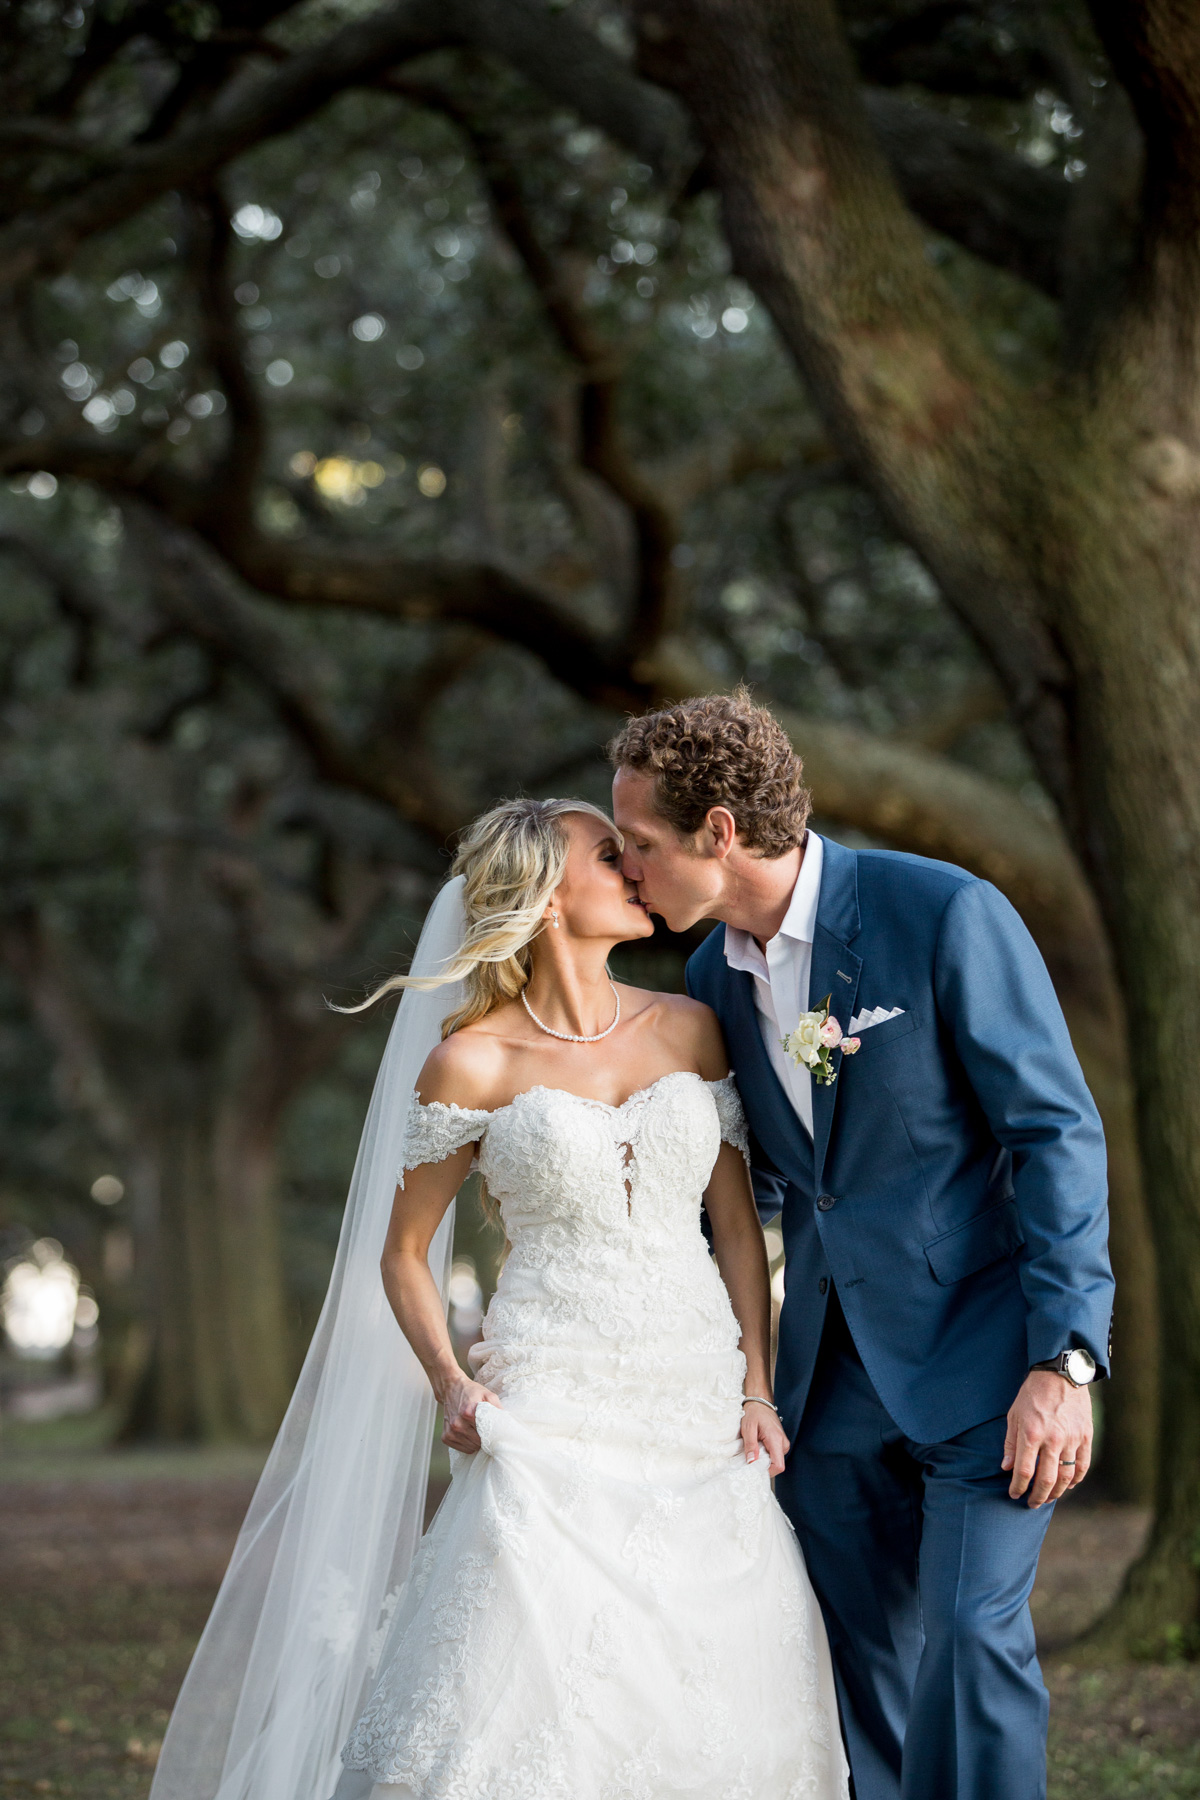 Charleston-best-wedding-photographer-SC-33.jpg